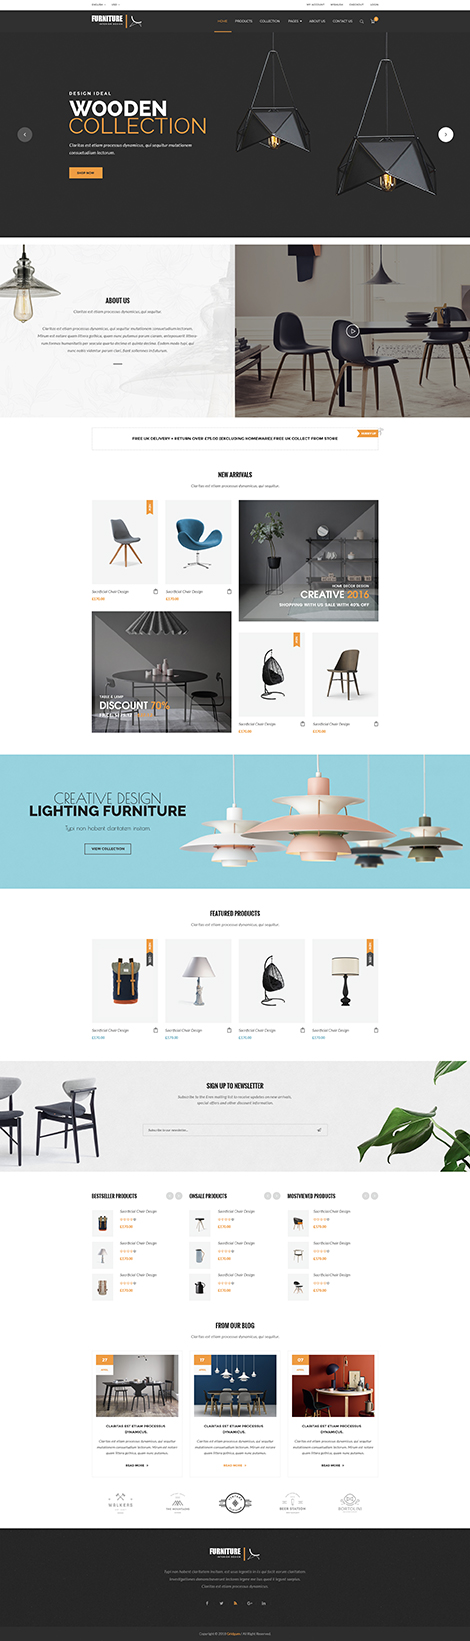 eShop Woocommerce Wordpress template ID: 300111941